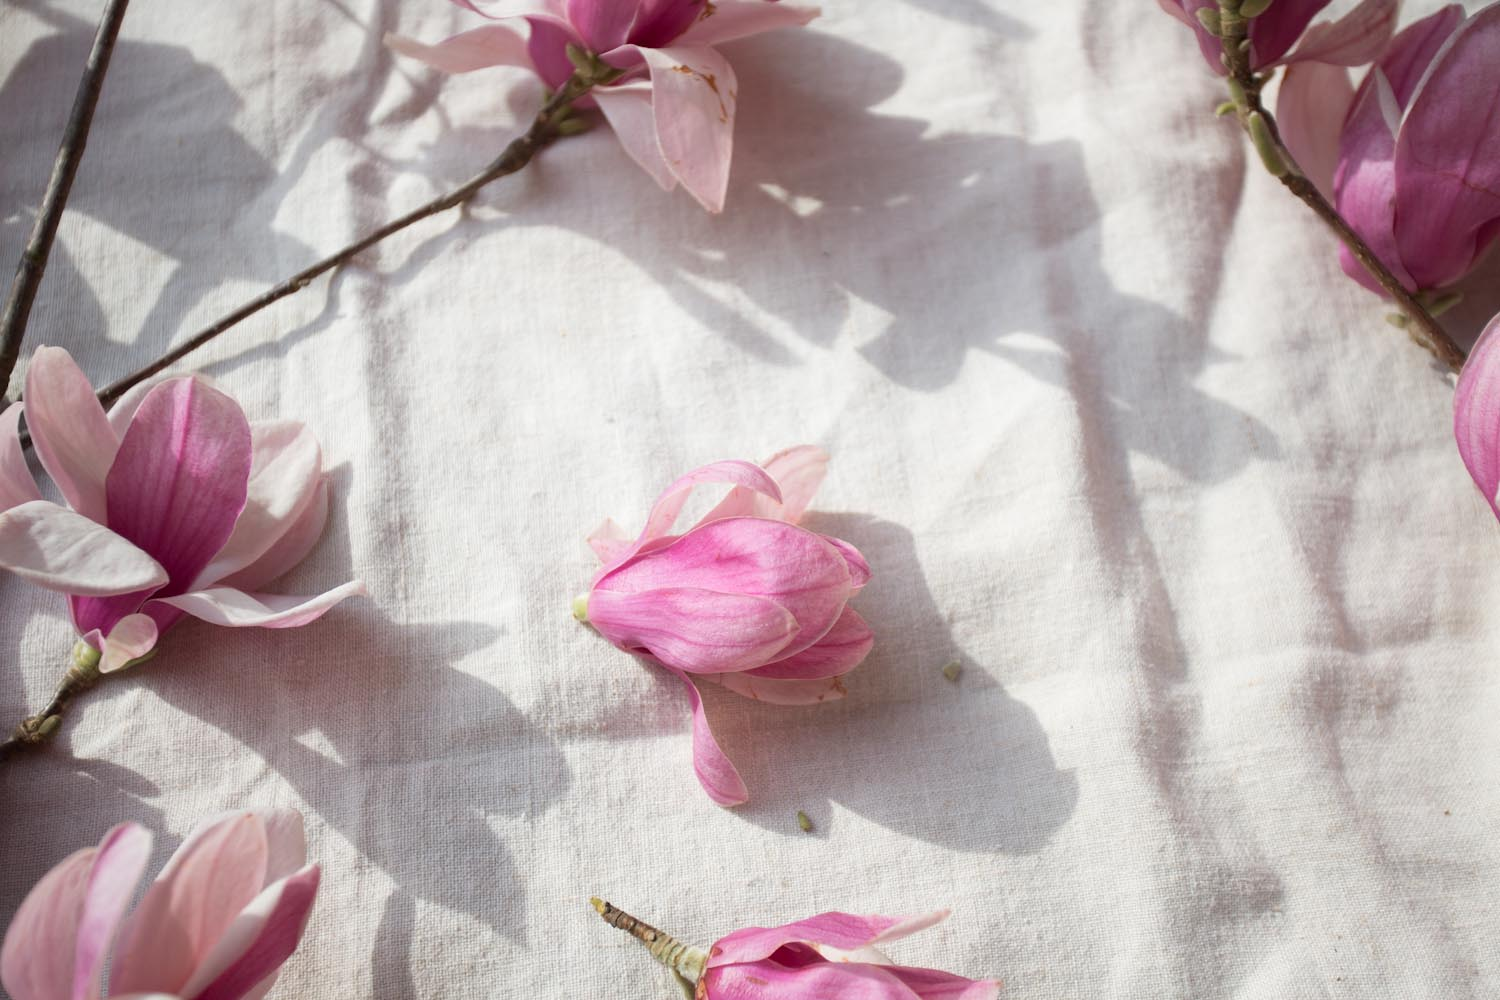 japanese magnolia, waiting-1133.jpg